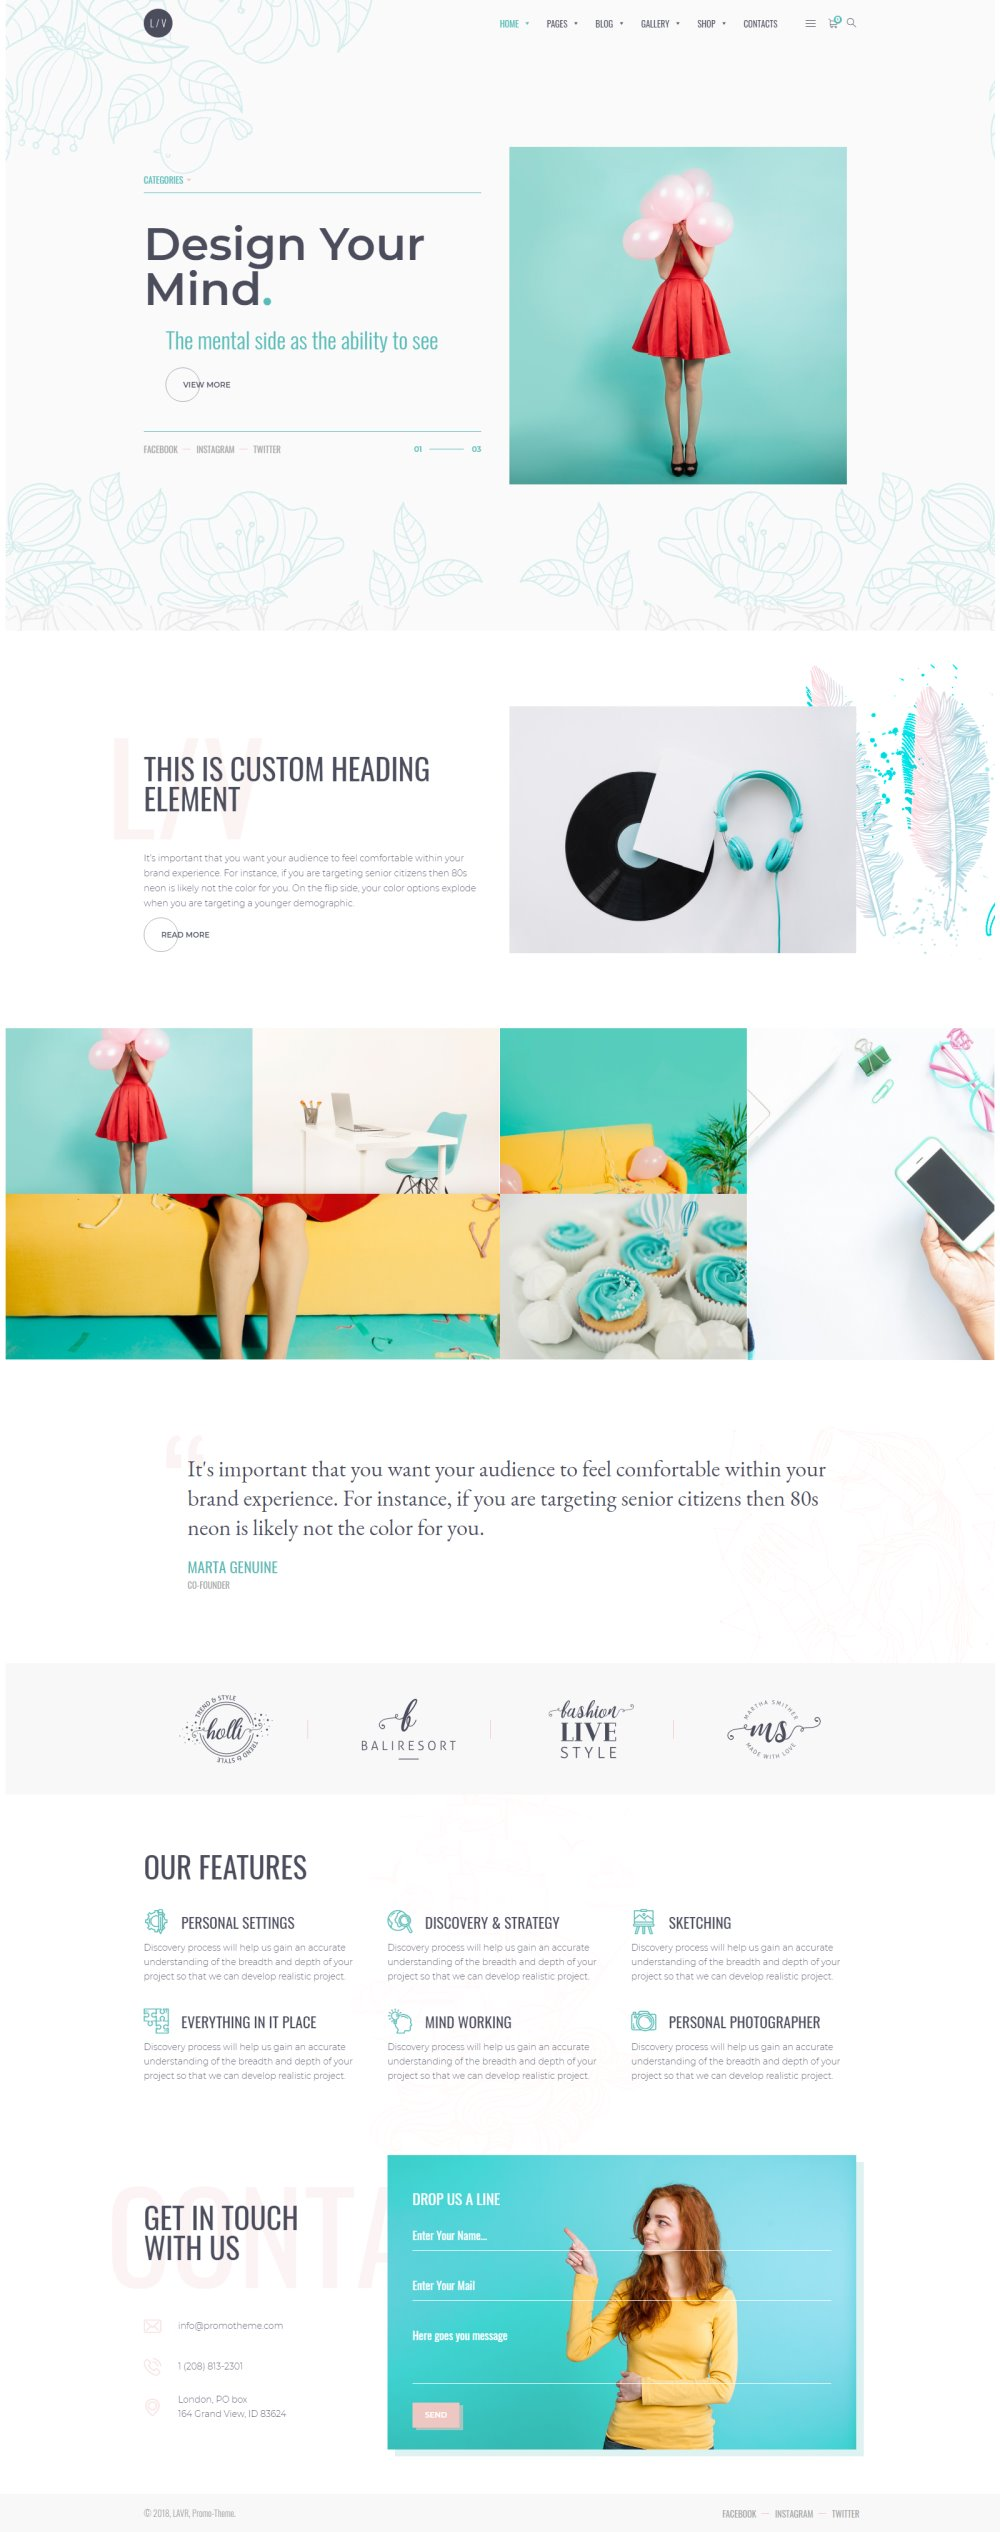 Best WordPress Themes and Web Design for Creatives